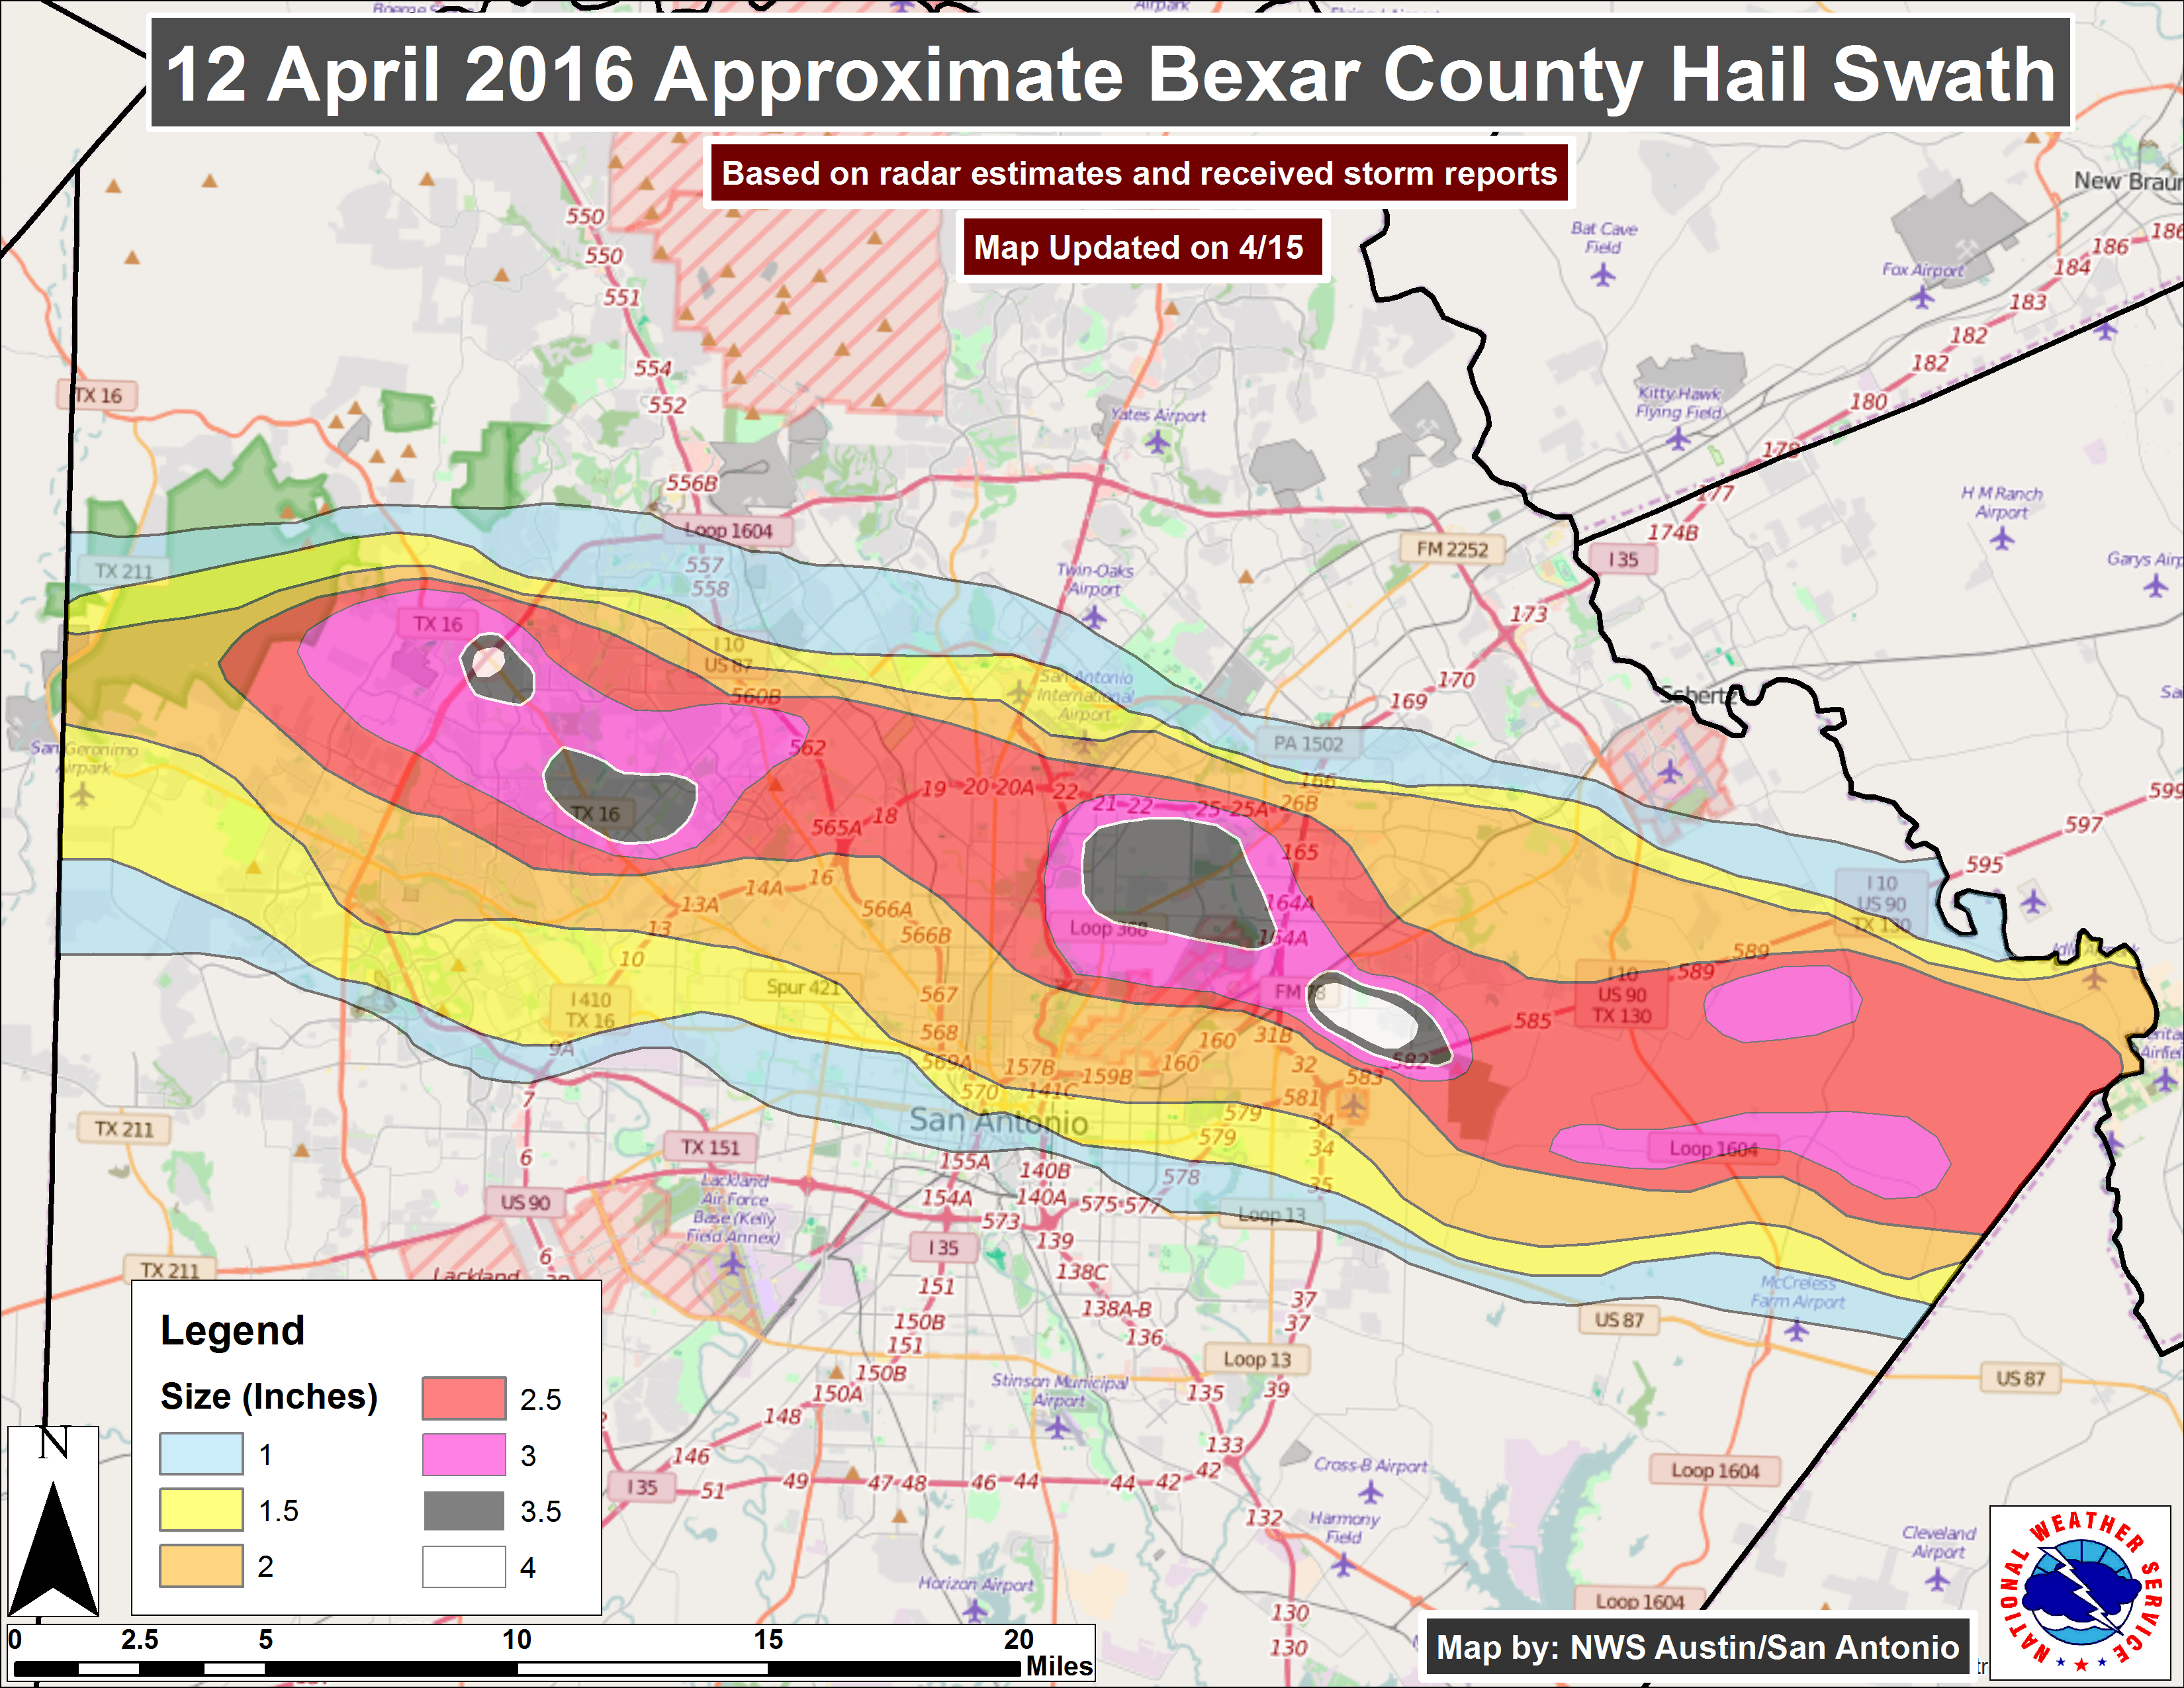 Texas Tornado Damage Map CoreLogic Pegs Total Damage from Texas Spring Hail Storms at